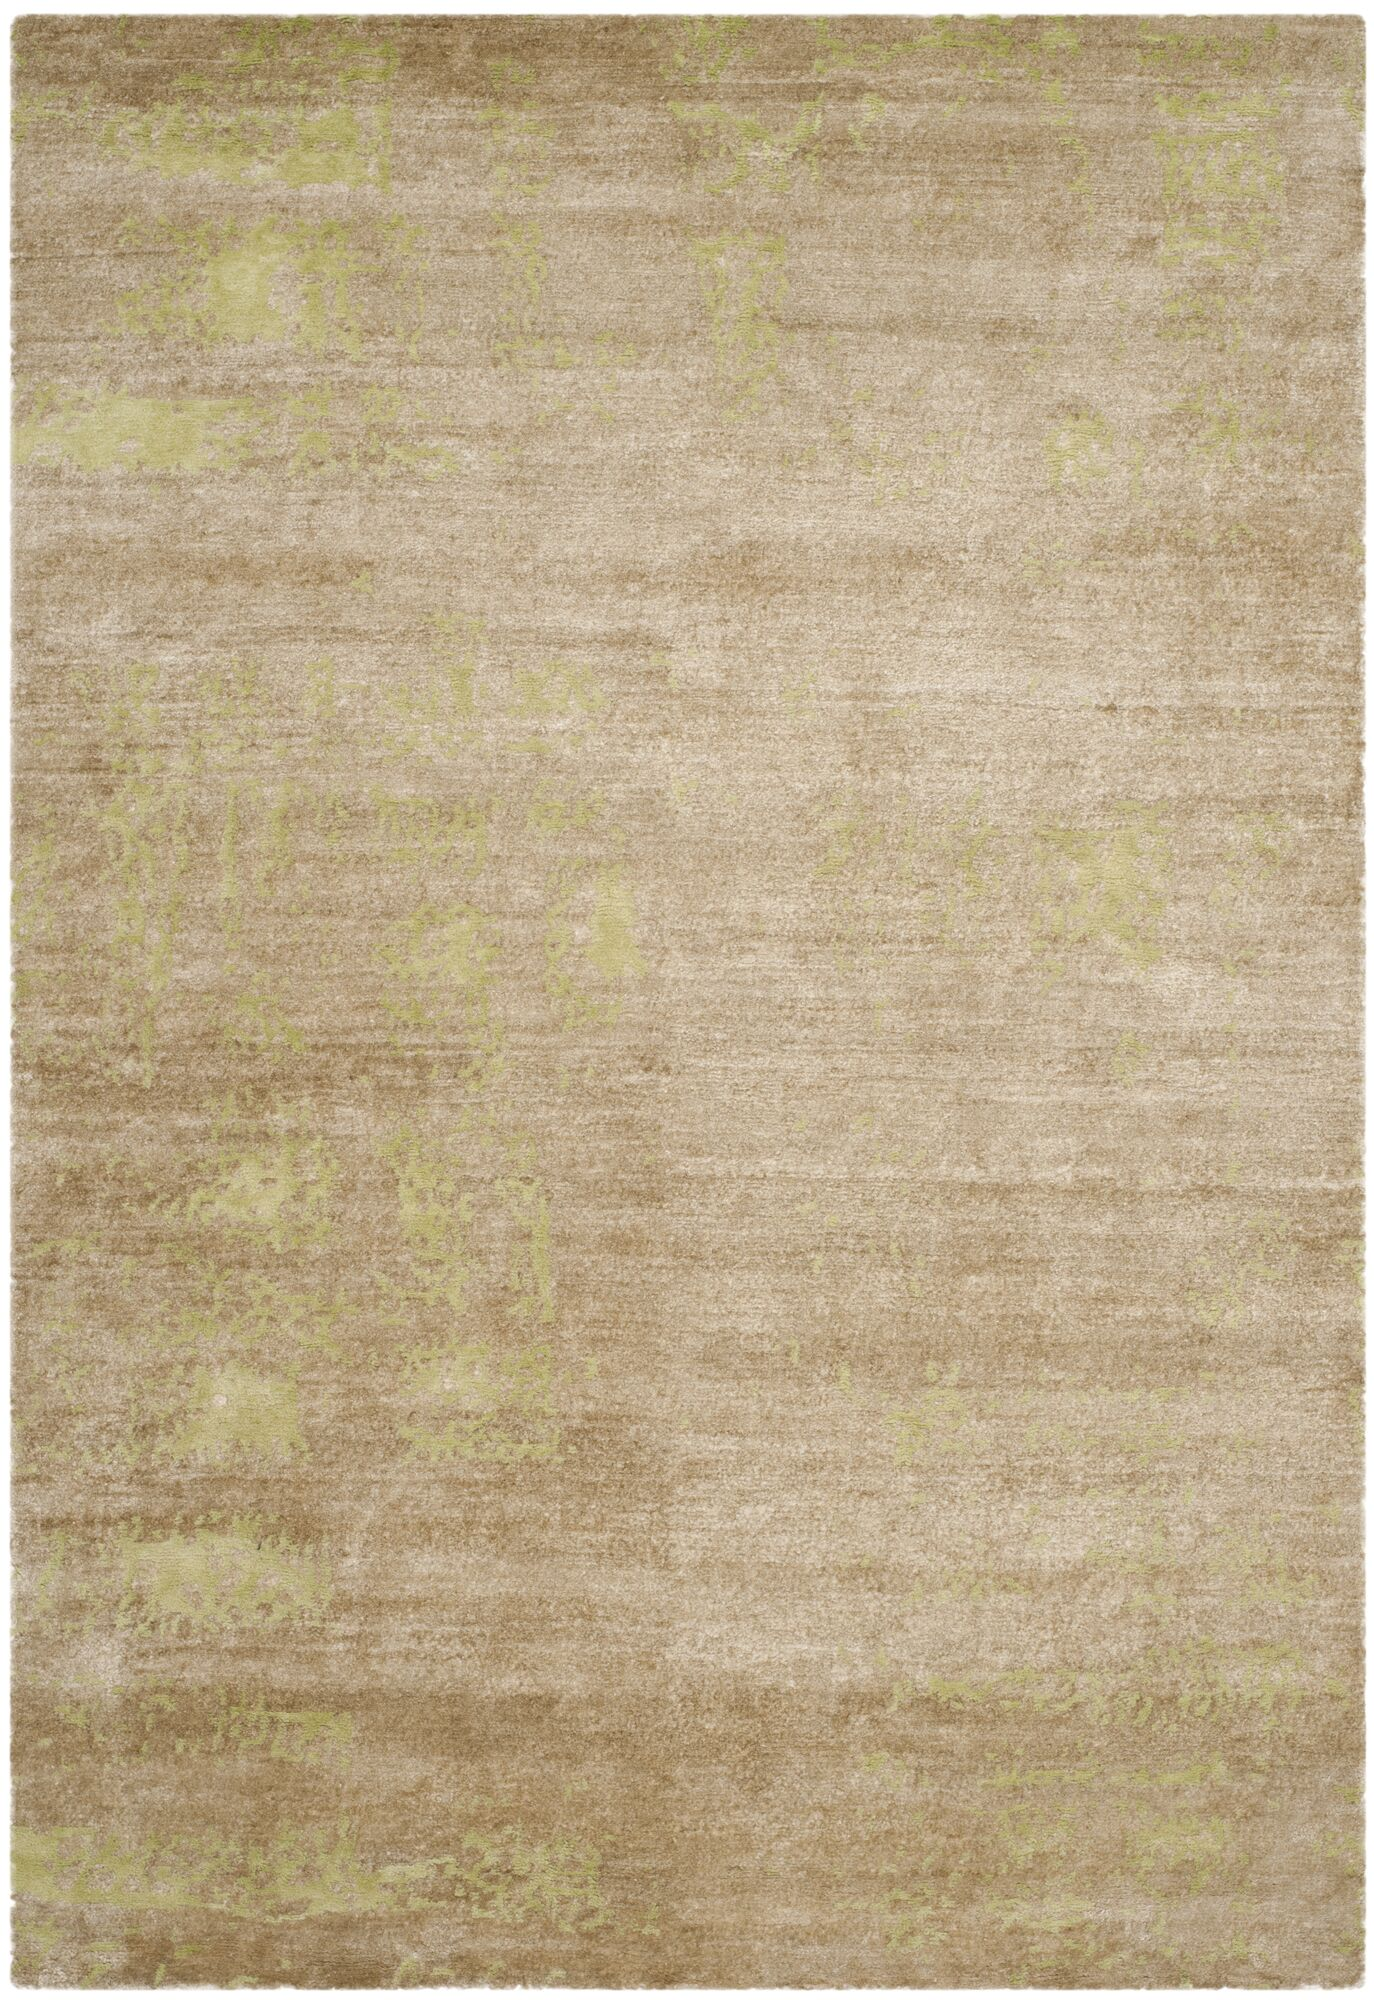 Elrod Tibetan Hand Knotted Green Area Rug Rug Size: Rectangle 6' x 9''